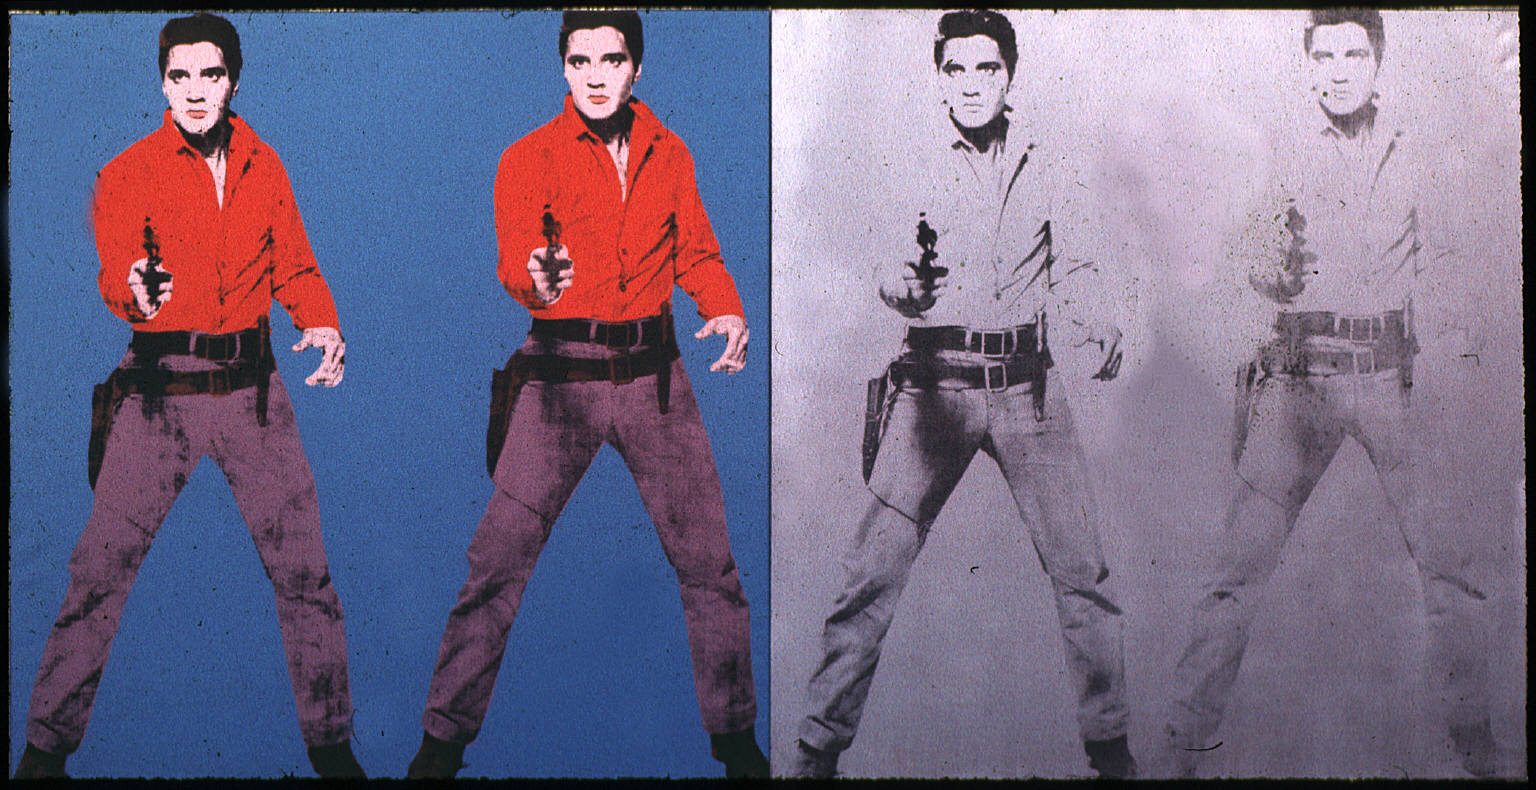 [Elvis I & II by Andy Warhol, 1963. The original images images of Elvis were taken from a publicity still for the 1960 movie Flaming Star. Based on the 1958 book Flaming Lance by Clair Huffaker, the western film had an original working title of Black Star.